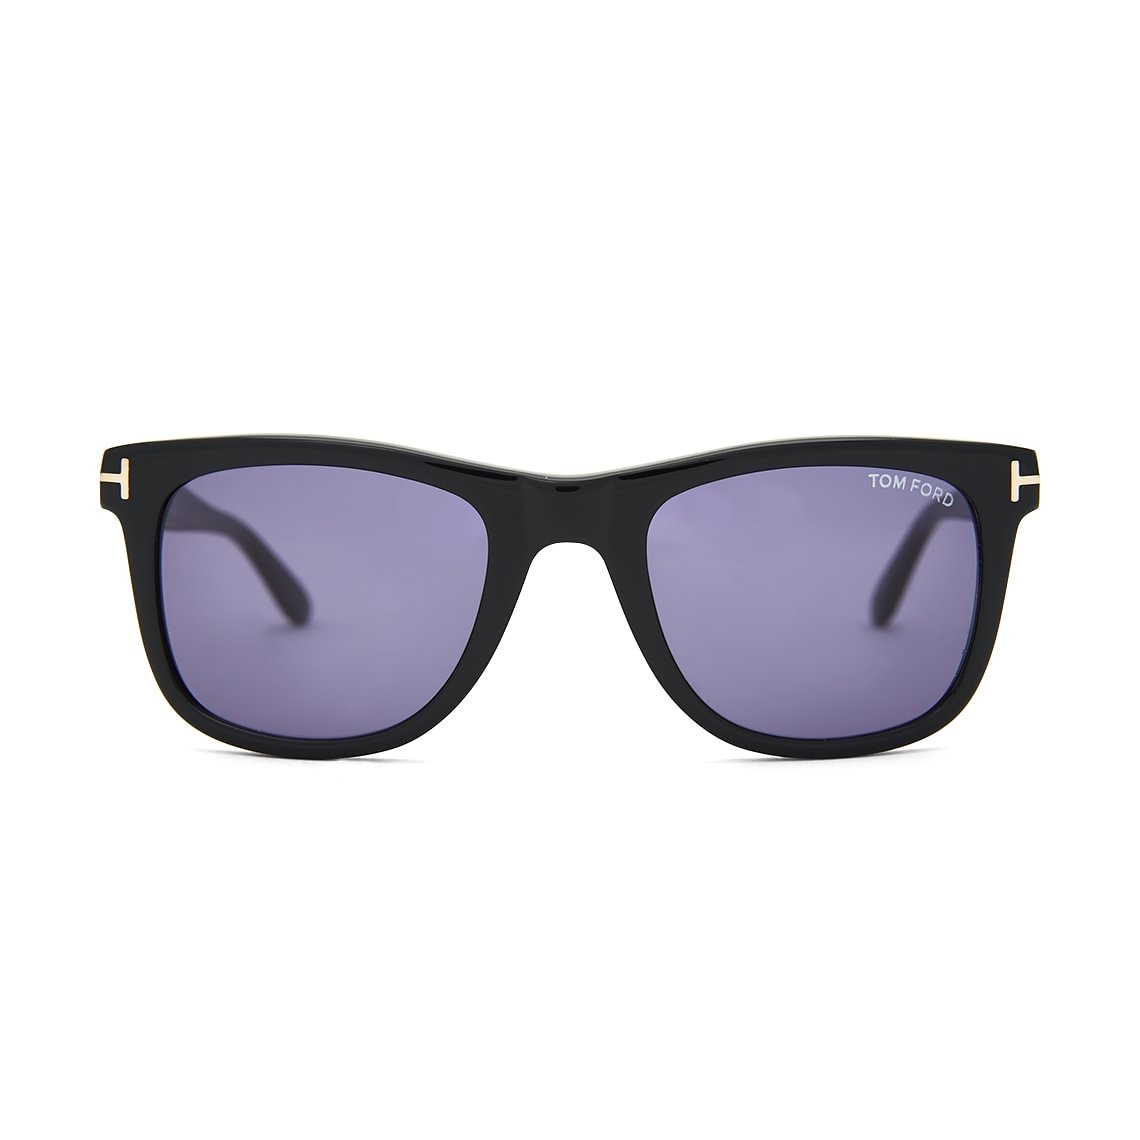 Tom Ford  TF336 01V 52